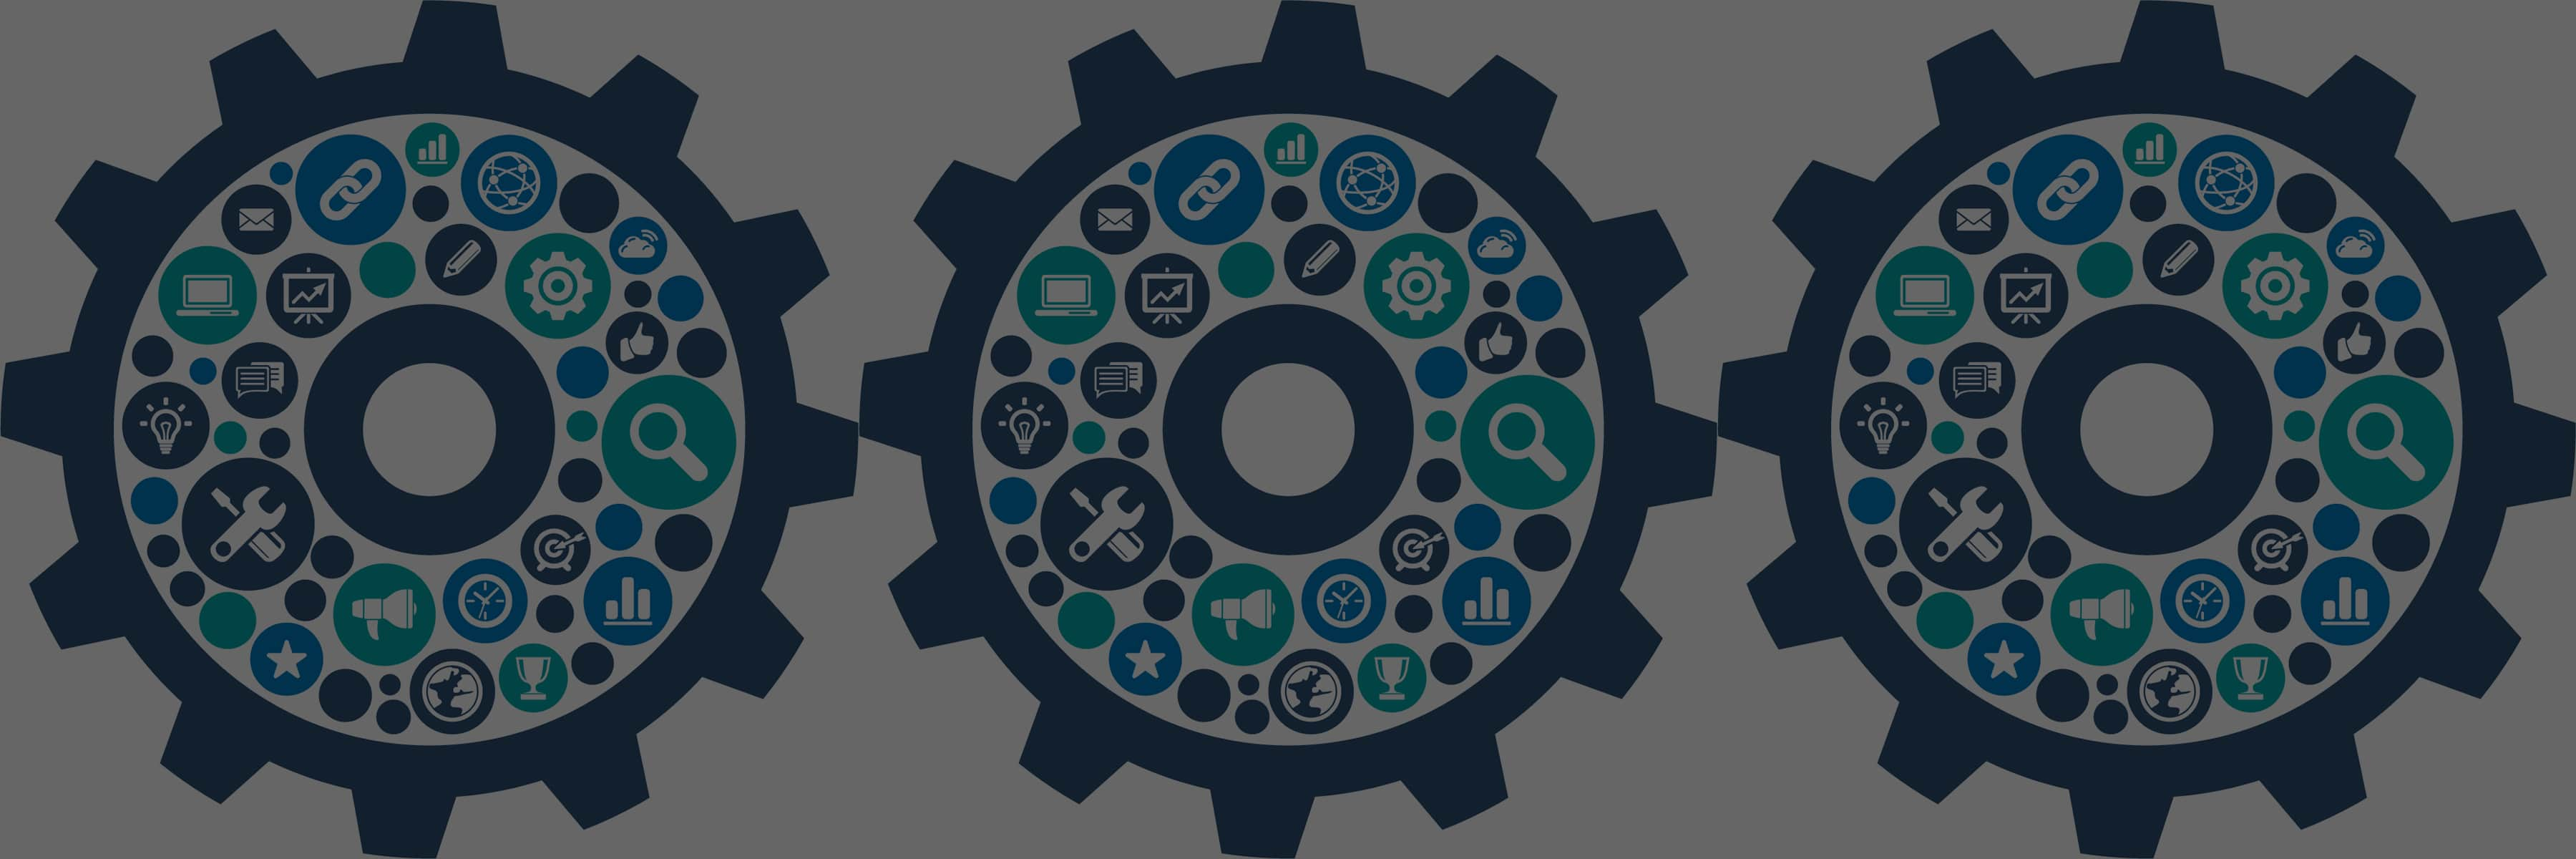 naem-webinar-2017-thriving-in-the-circular-economy-product-design-and-business-practices-for-circular-tech-and-other-industries-1800x600-min